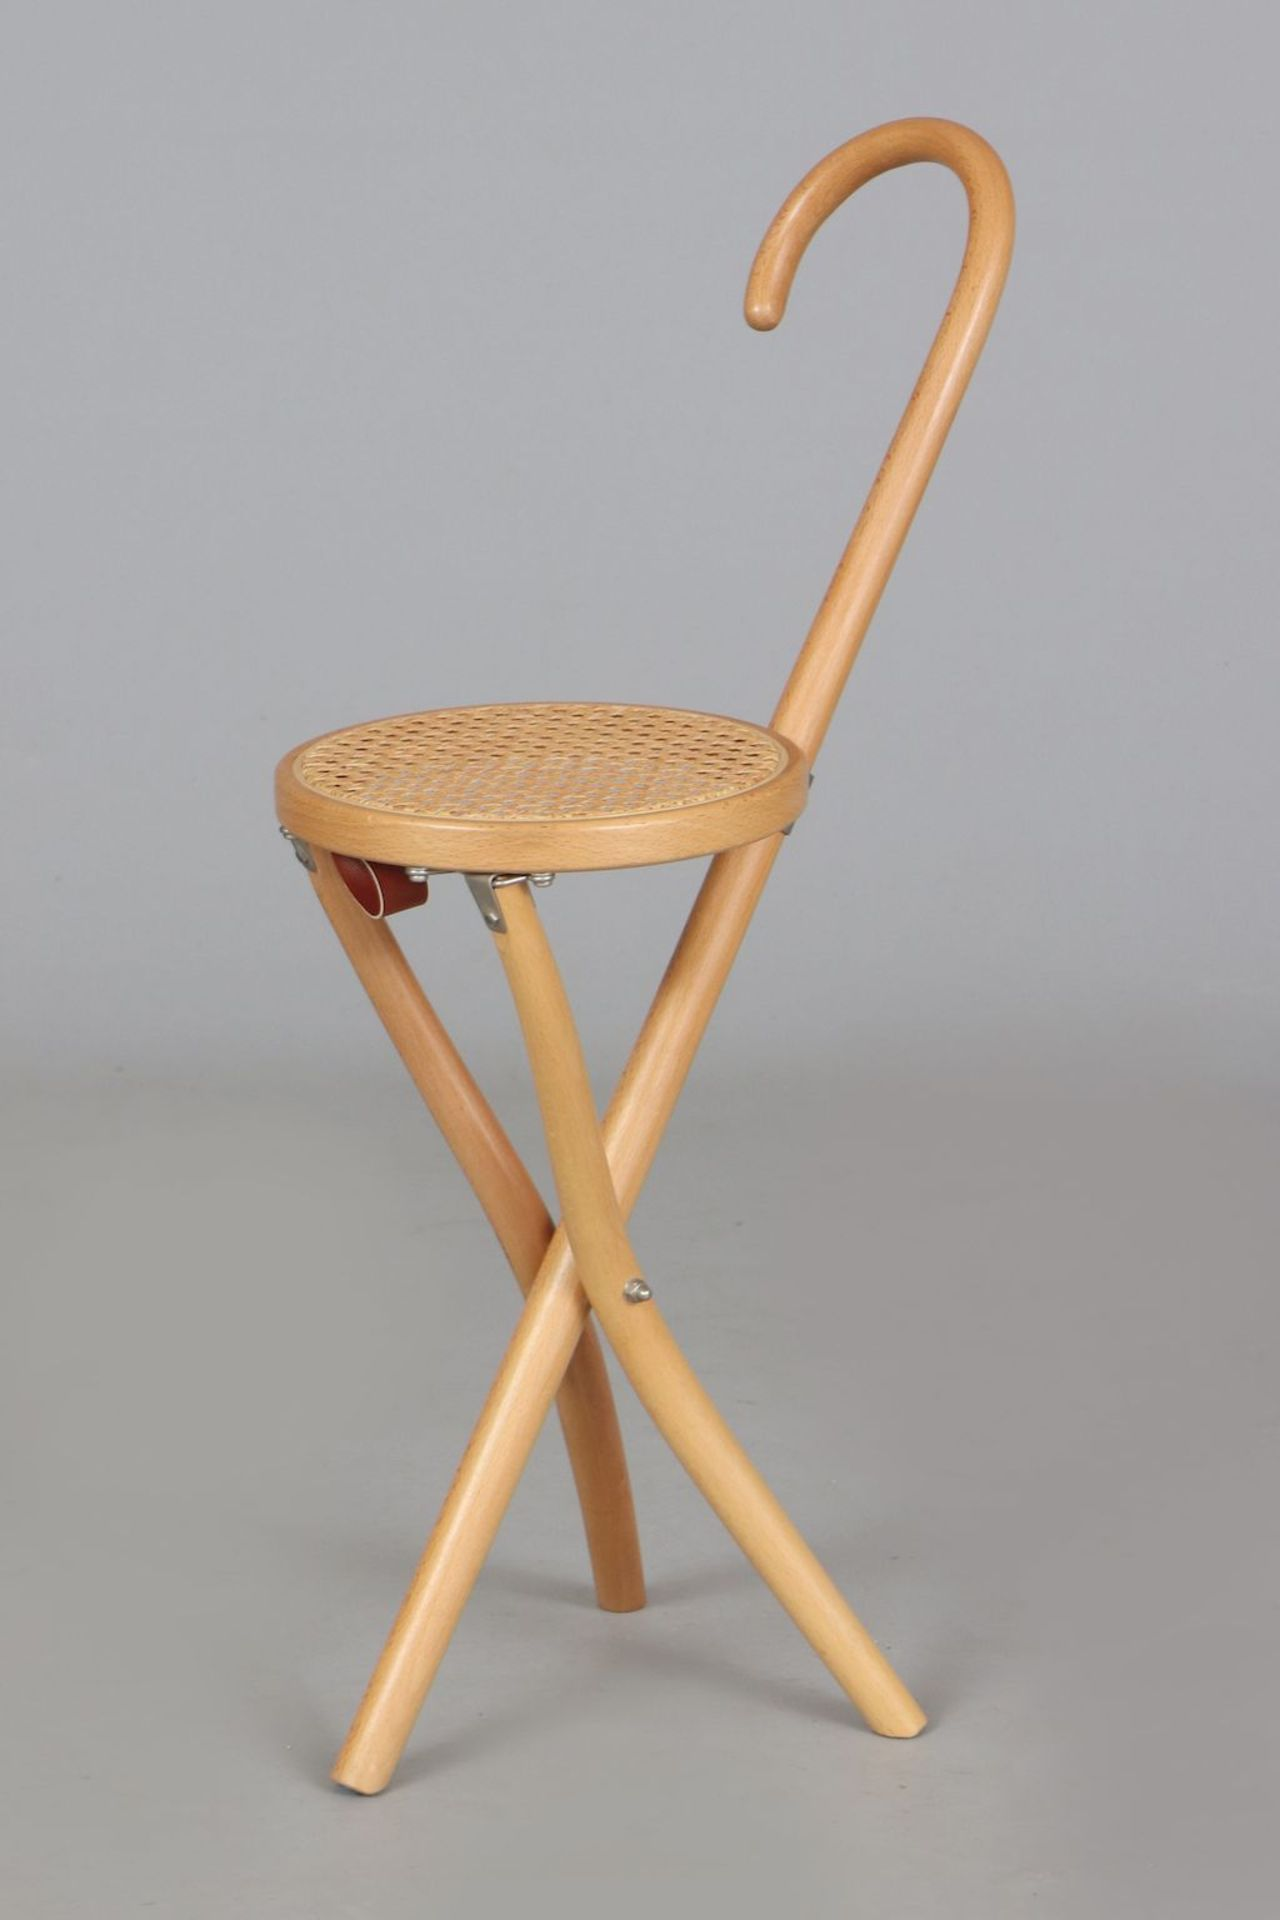 THONET ¨Jagd-Hocker¨ - Image 2 of 4